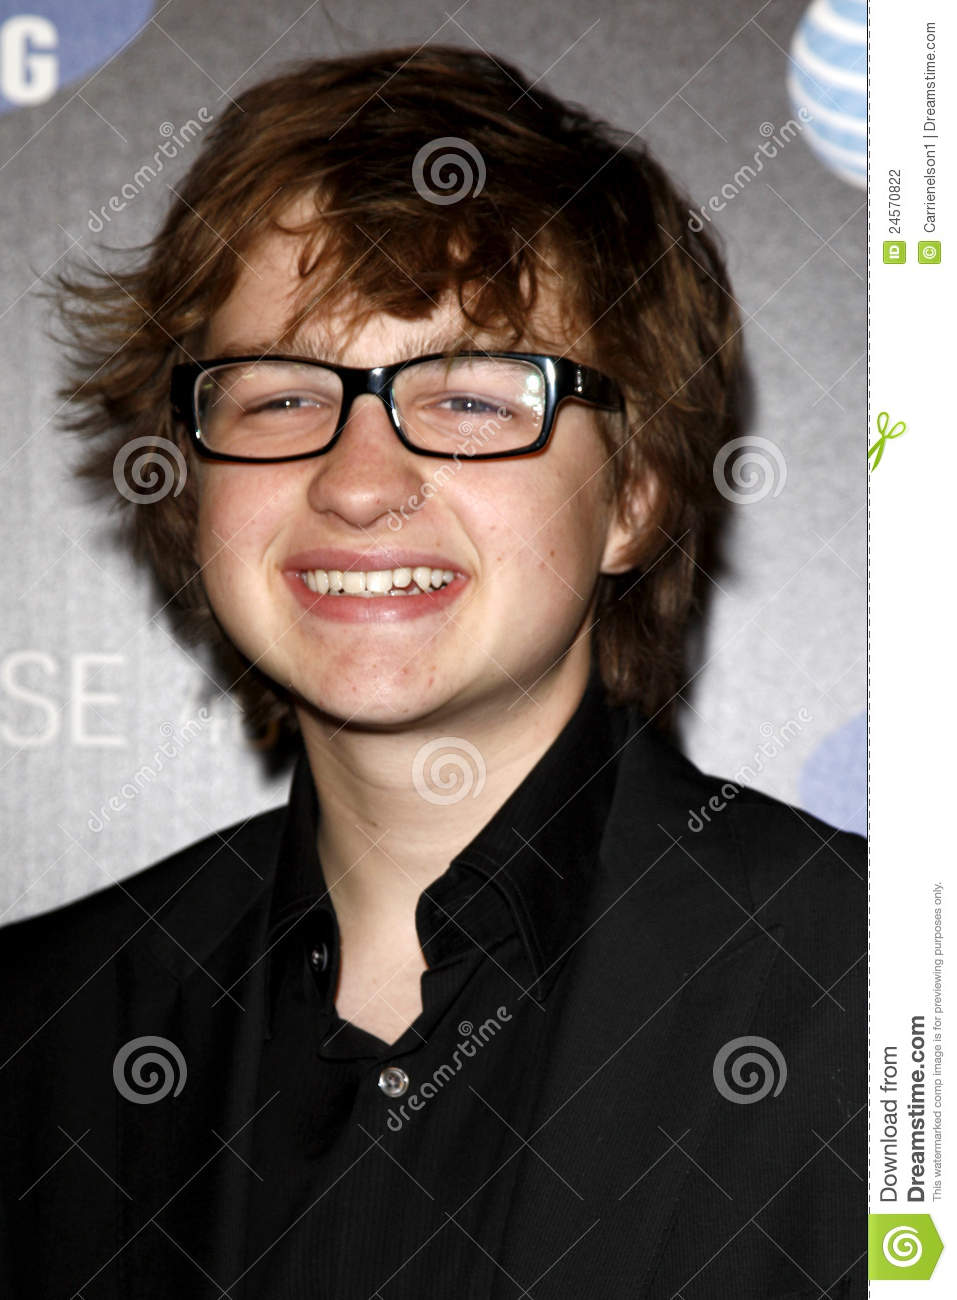 <b>Angus T Jones</b>, <b>Angus T. Jones</b> Redaktionelles Stockfotografie - angus-t-jones-angus-t-jones-24570822